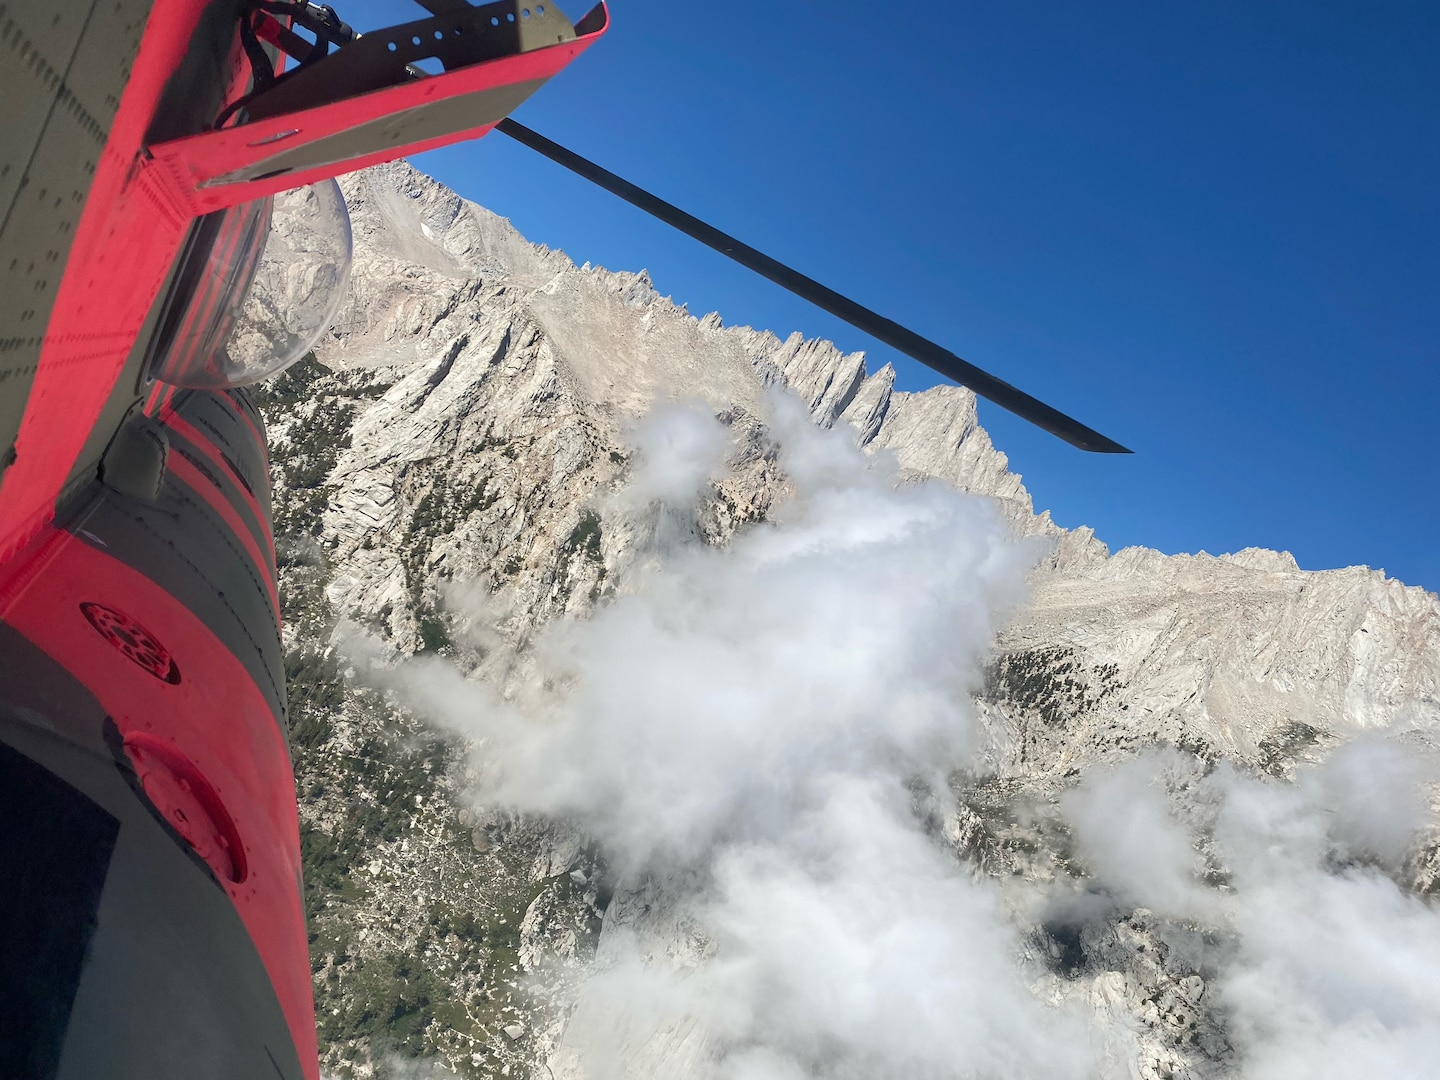 A U.S. Army CH-47F Chinook helicopter from the California Army National Guard's Army Aviation Support Facility in Stockton, California, flies near Mount Whitney in Inyo County July 27, 2021, during a search and rescue mission for three hikers who were stranded above 12,600 feet overnight with few supplies.